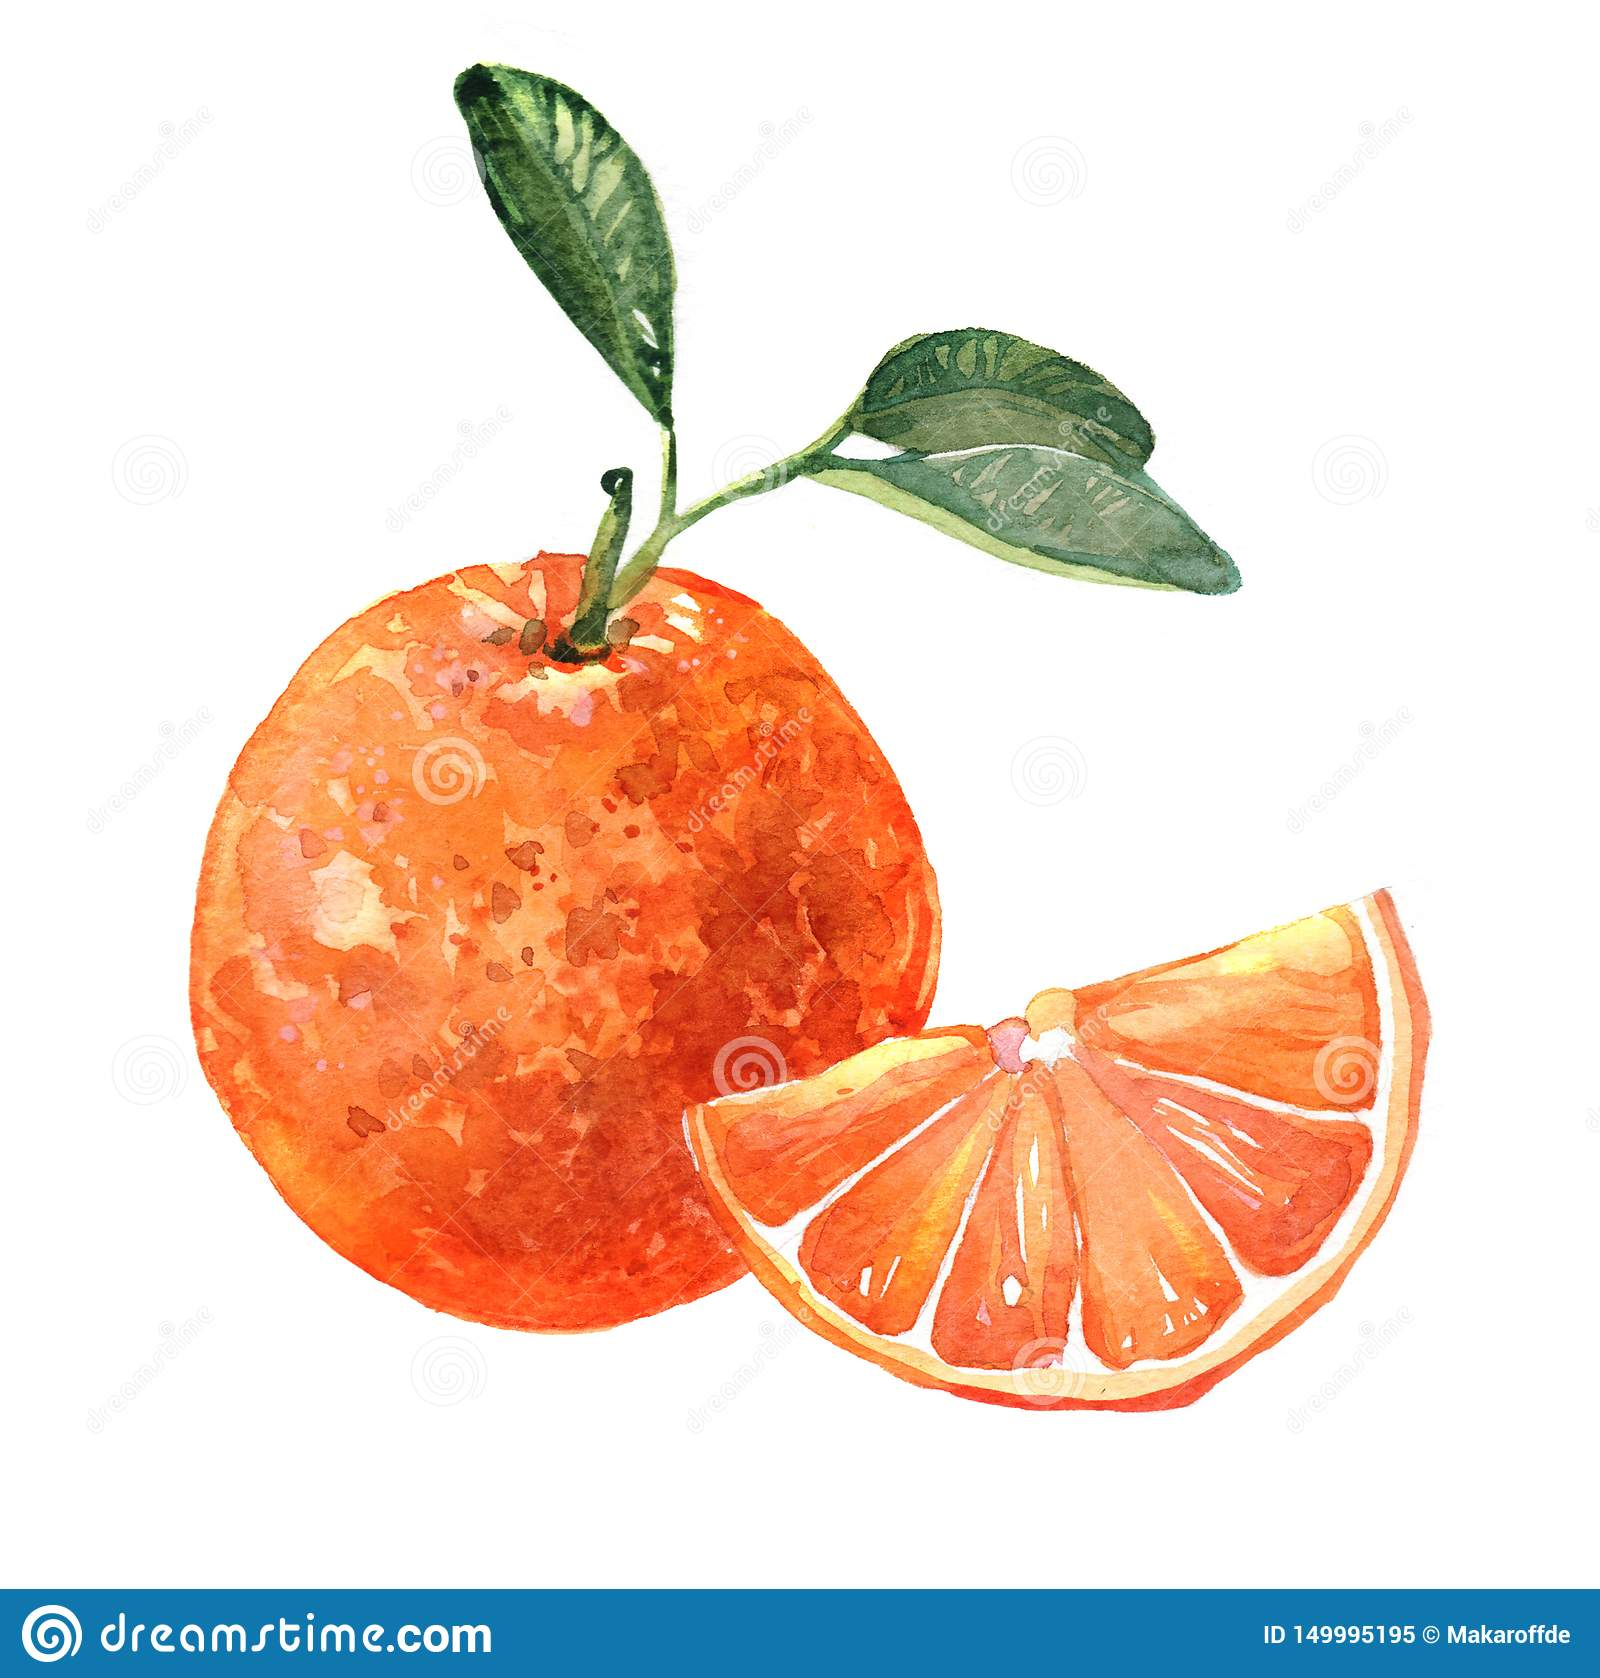 Watercolor orange fruit illustration isolated